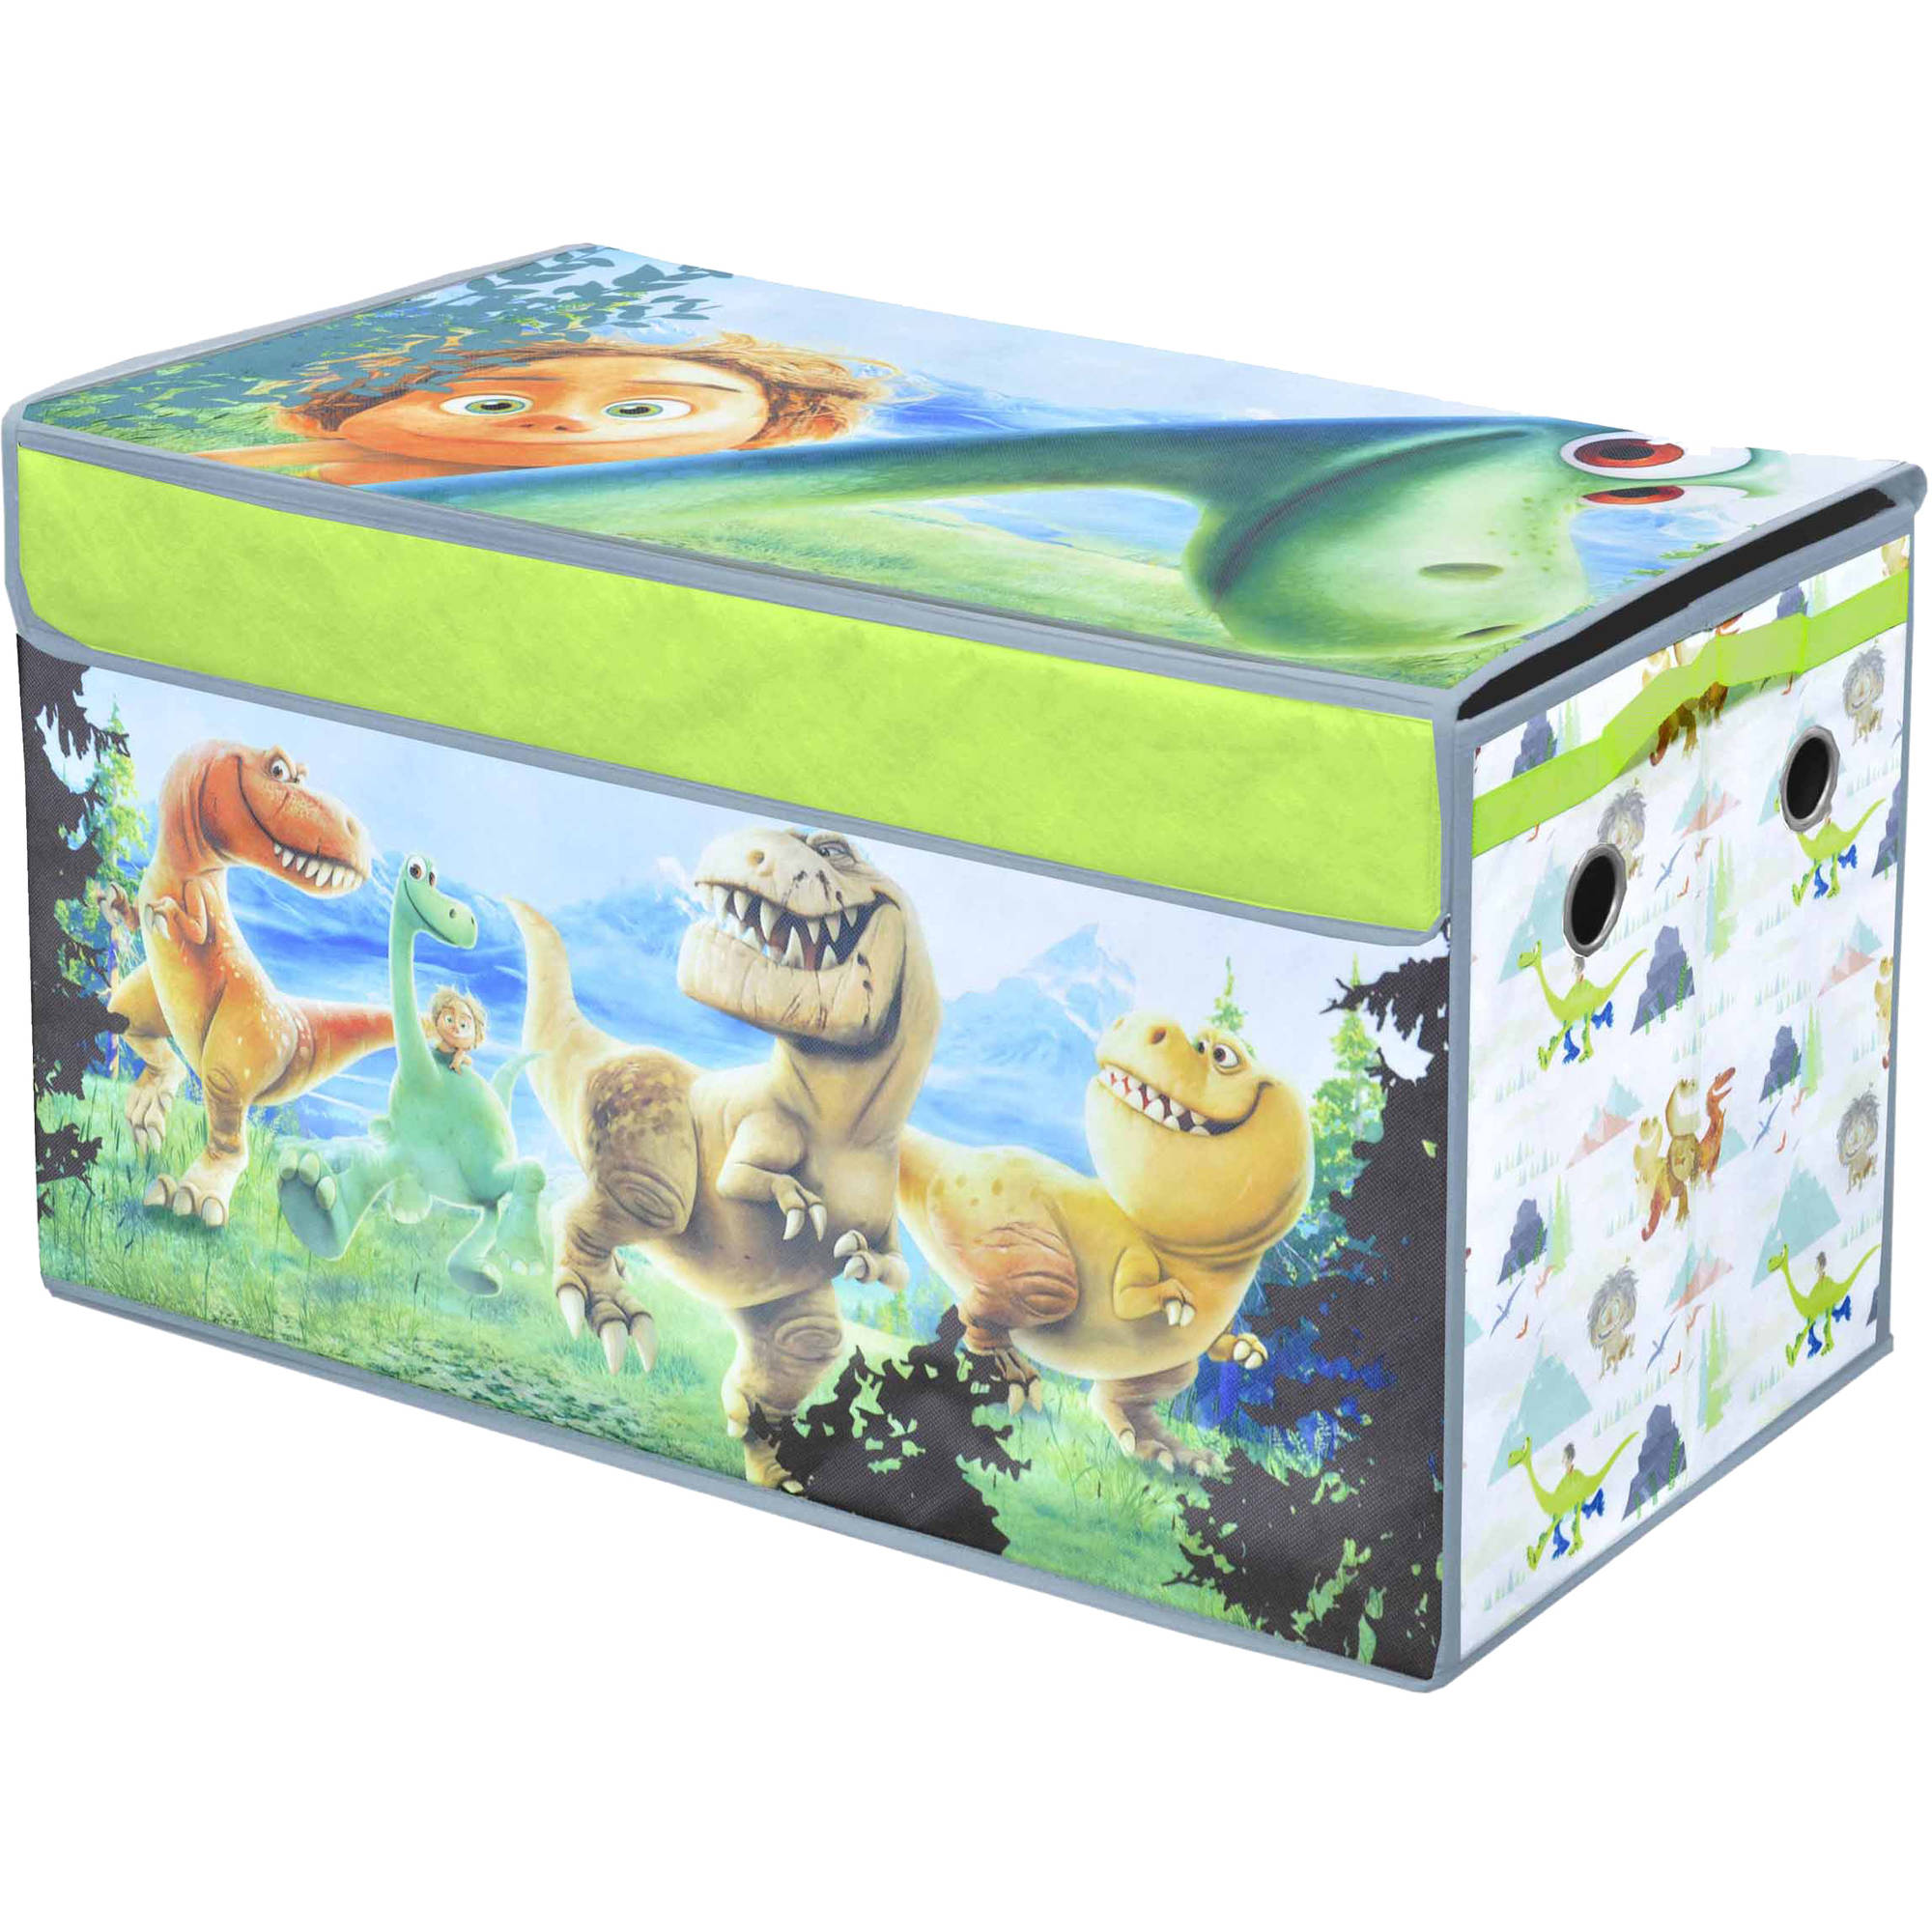 Good Dinosaur Oversized Soft Collapsible Storage Toy Trunk